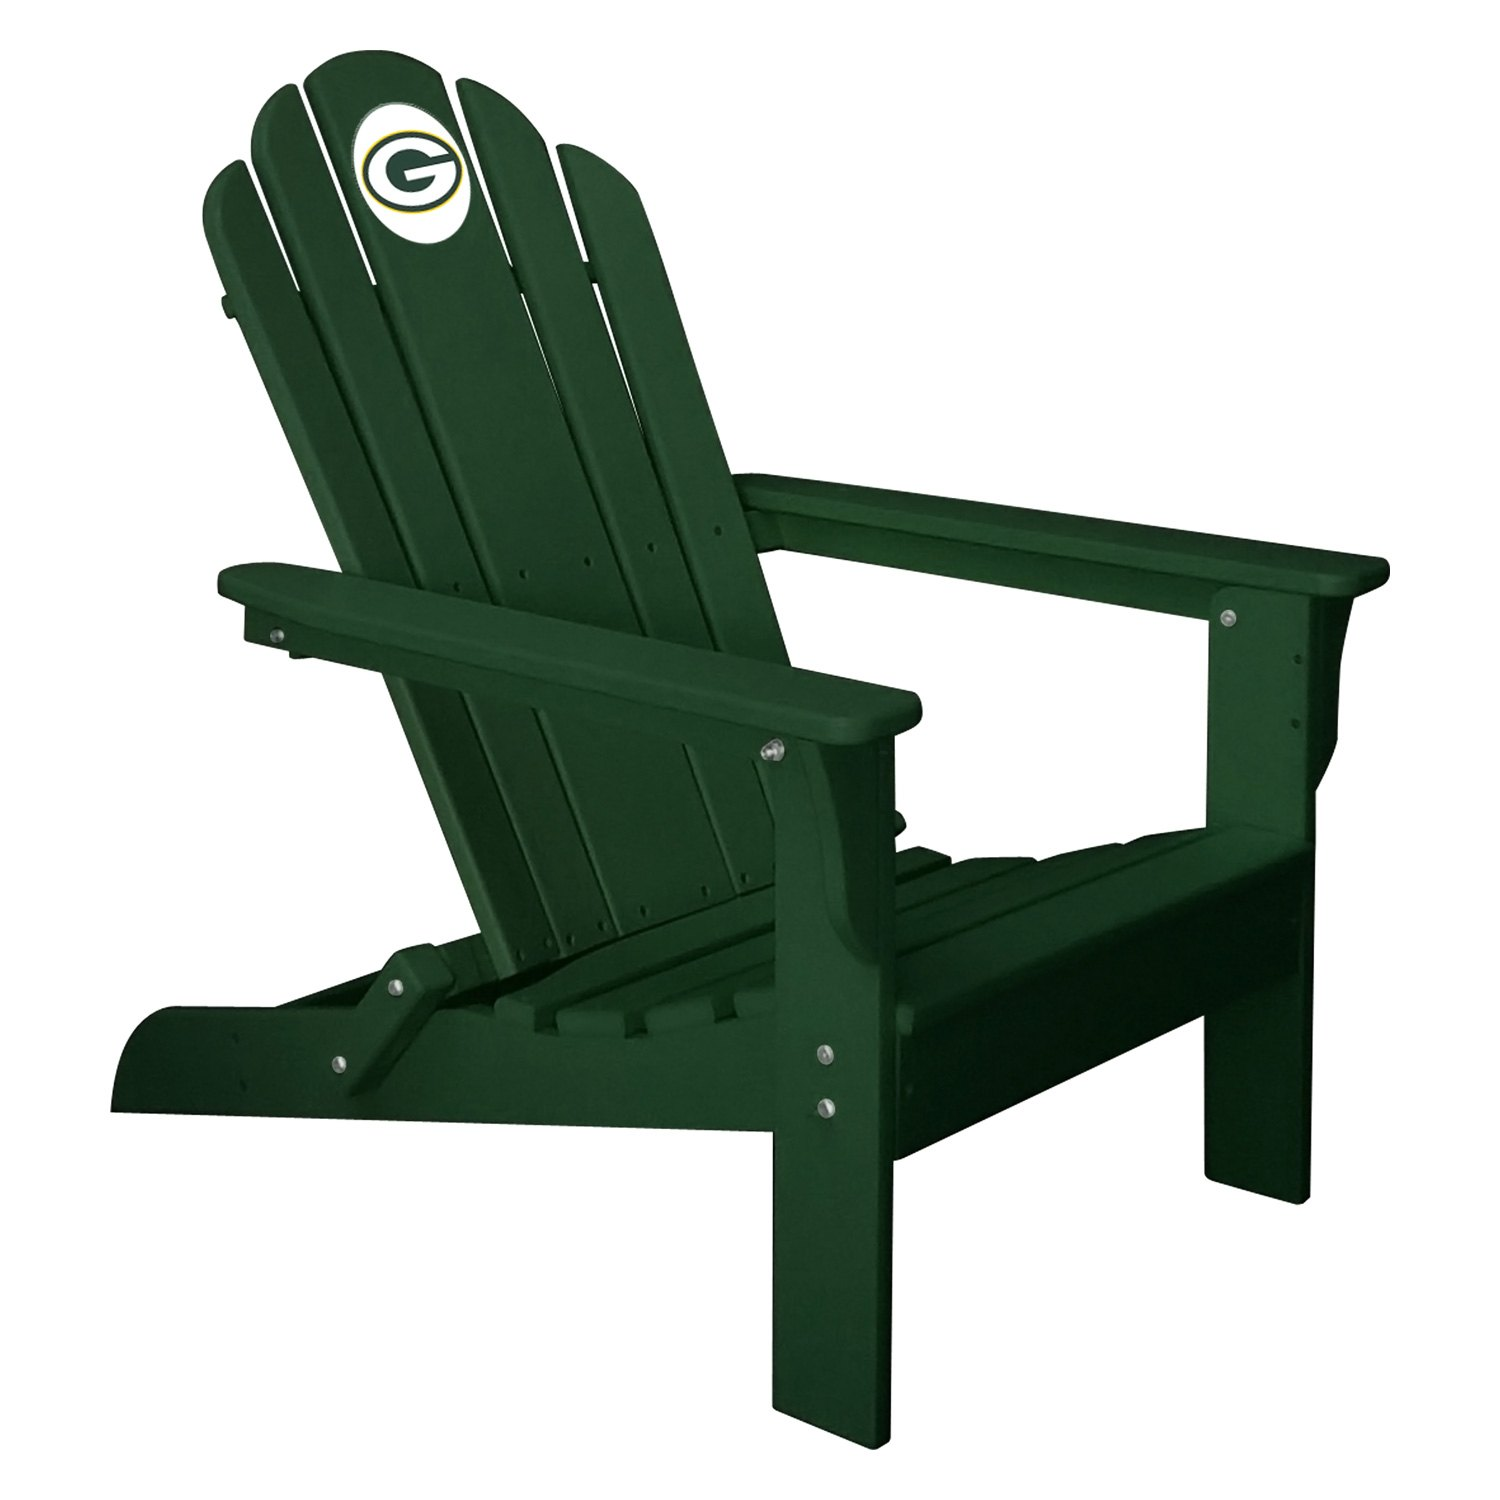 green bay packers chair chairs that lift you up imperial international imp 180 1001 nfl